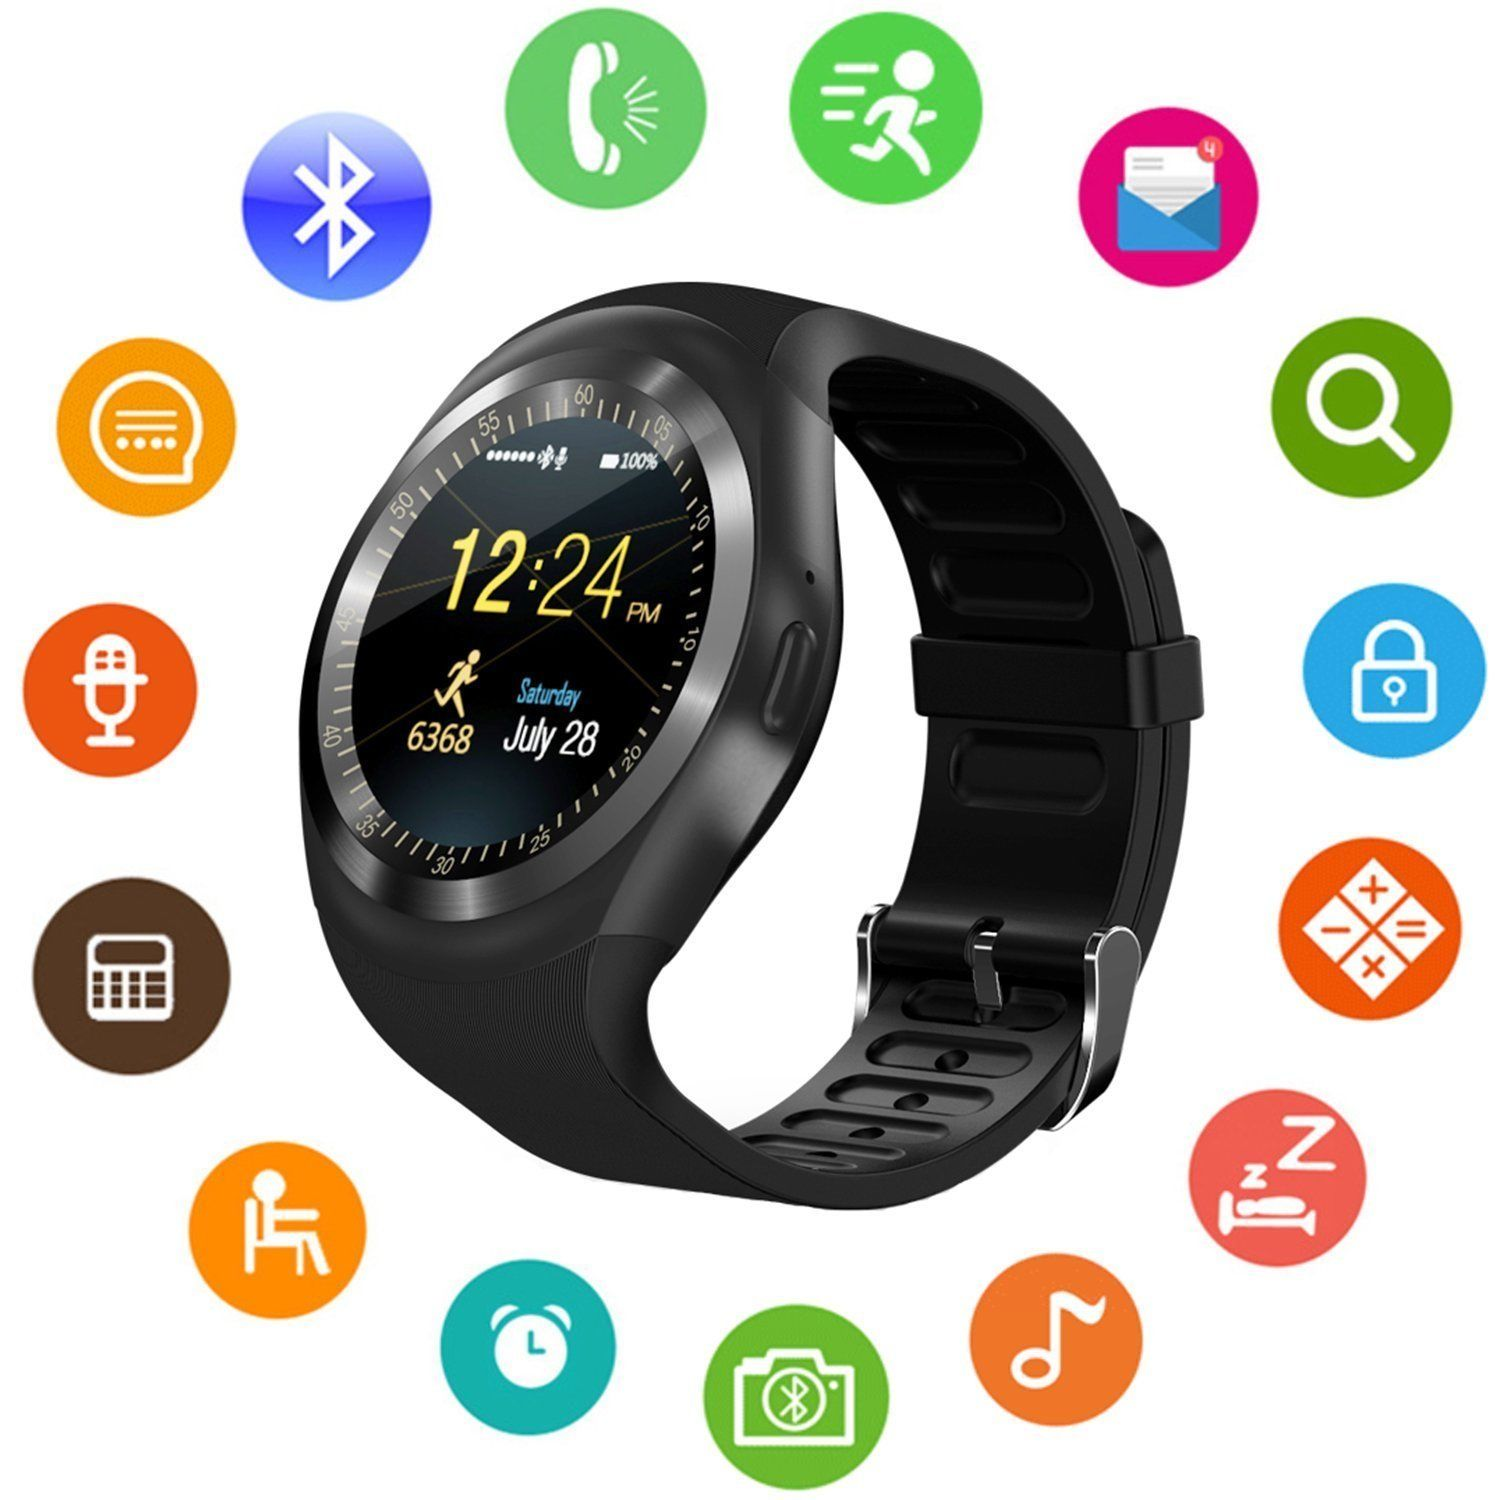 htc smartphone ip bluetooth sony for samsung iphone gsm mobile and com phone watch smart watches lg walmart android